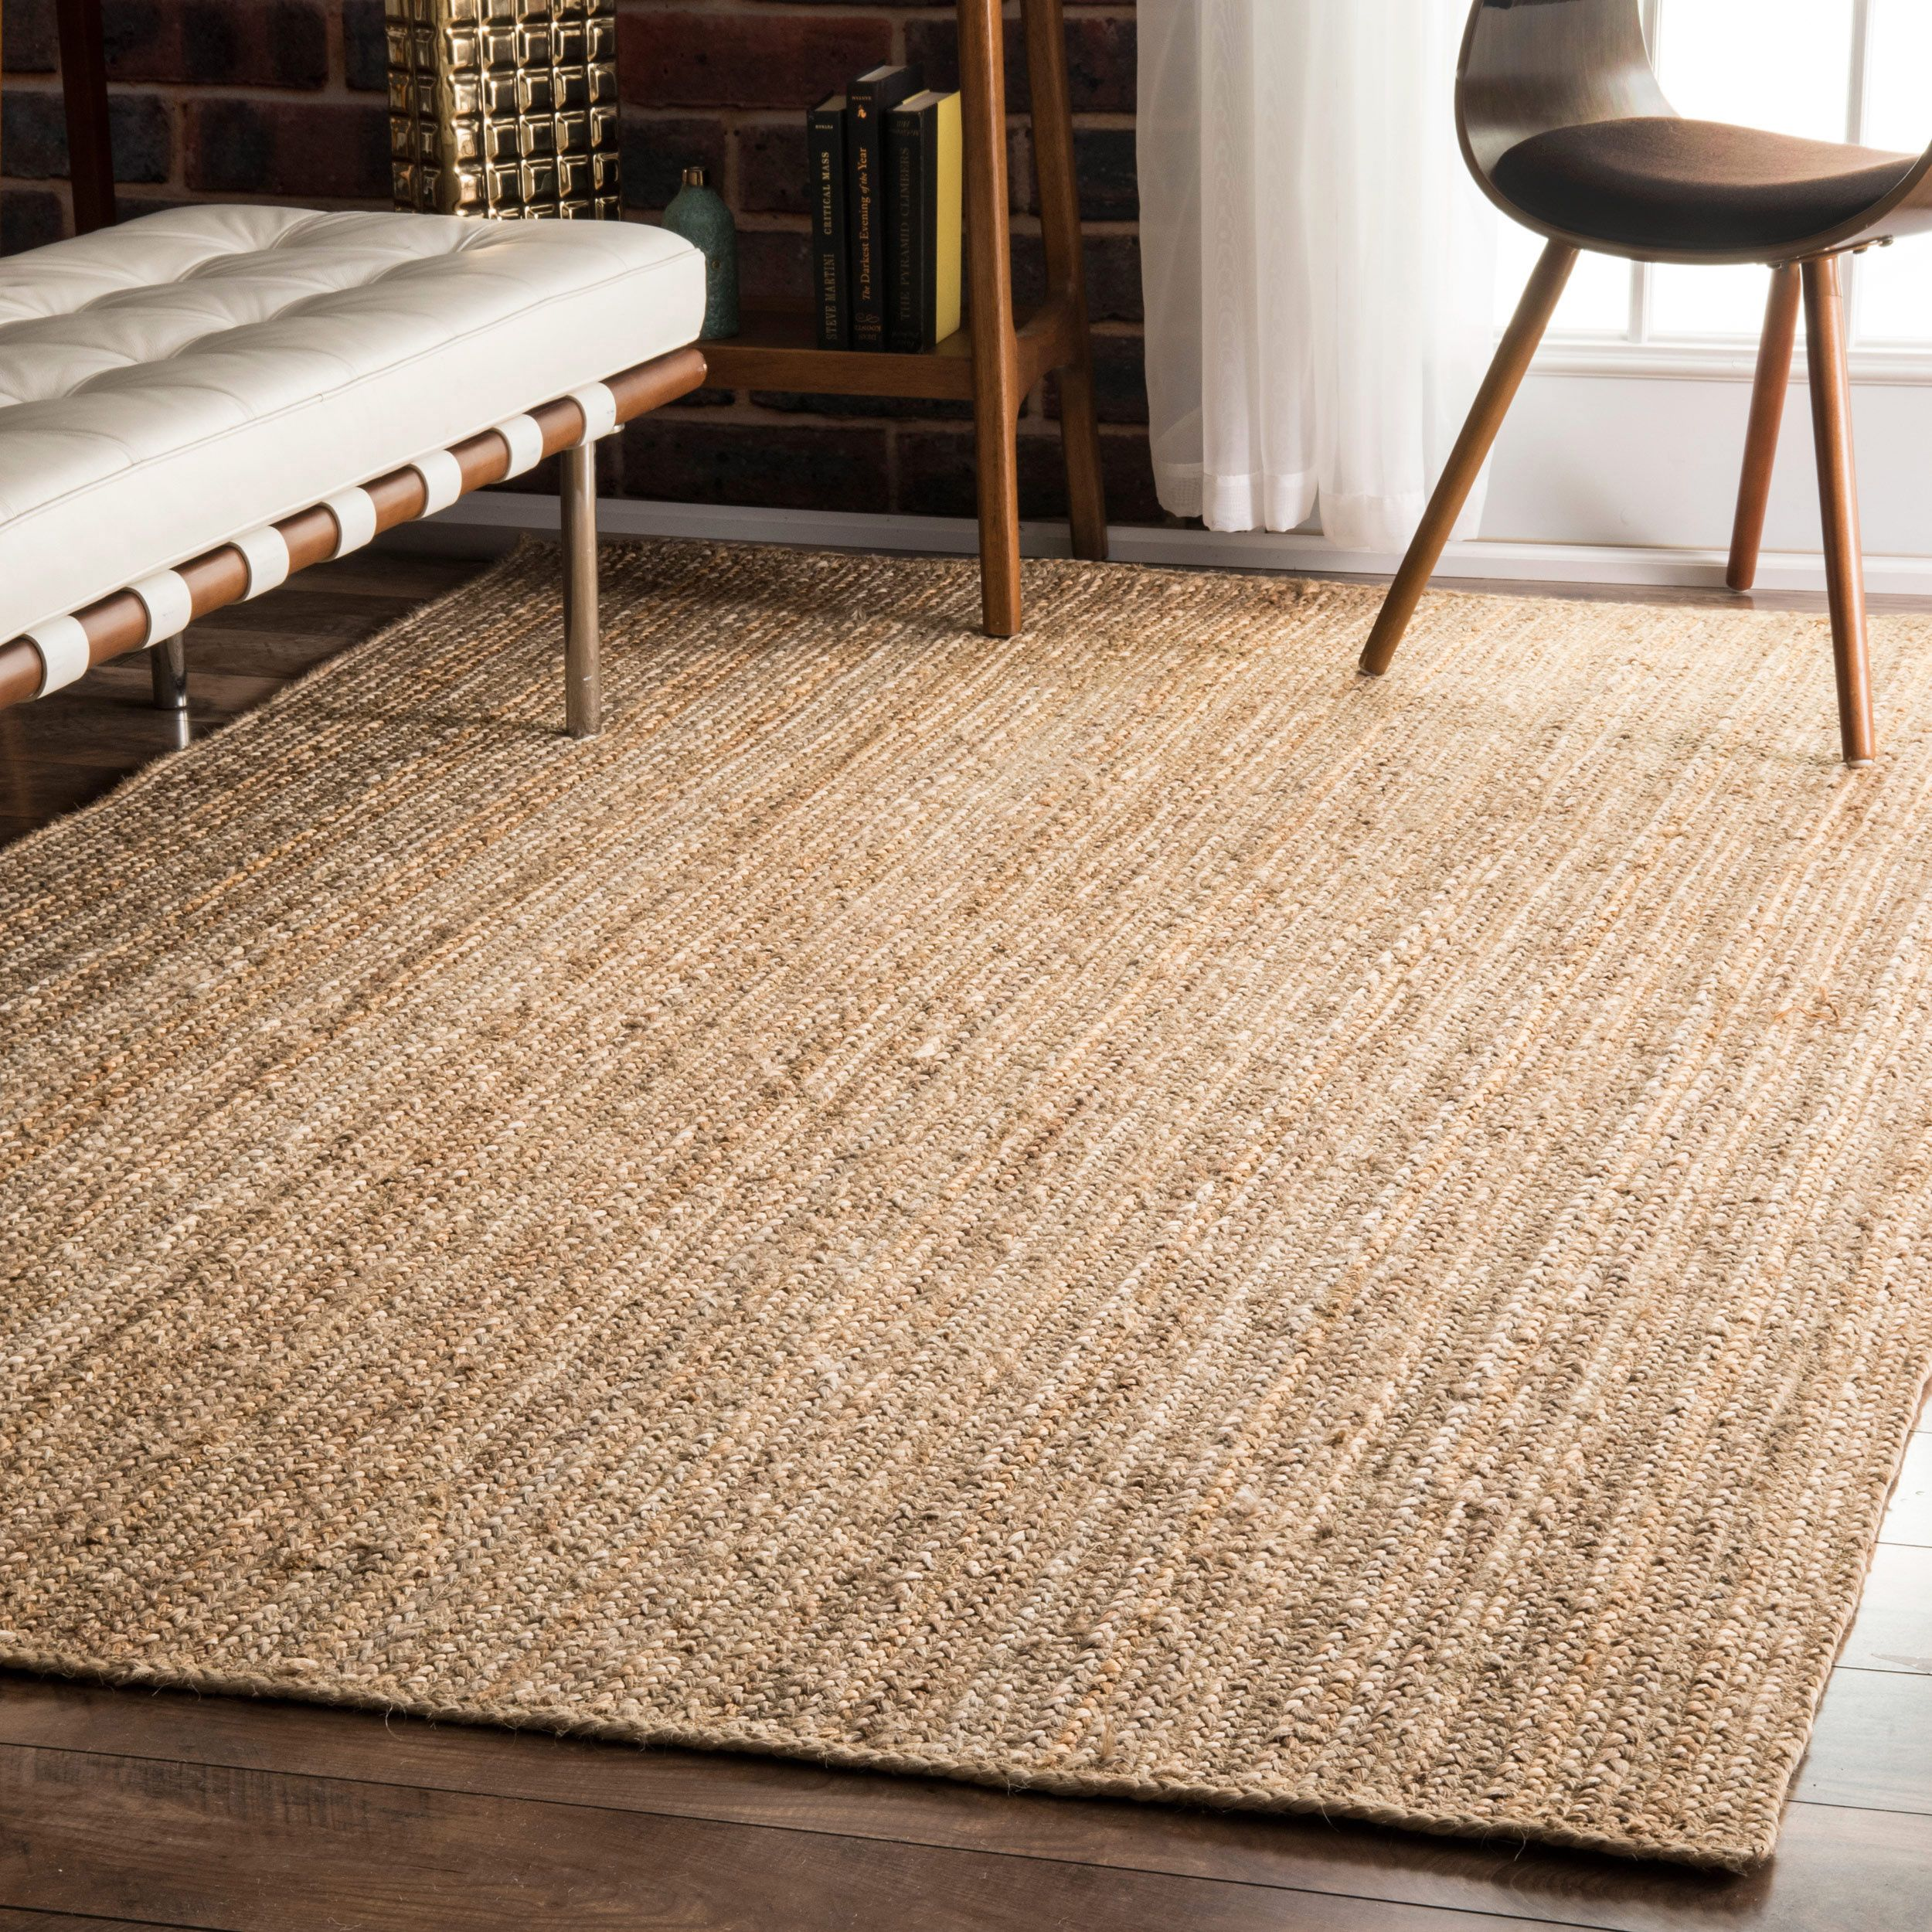 Havenside Home Duck Eco Natural Fiber Braided Reversible Jute Area Rug 8 X 10